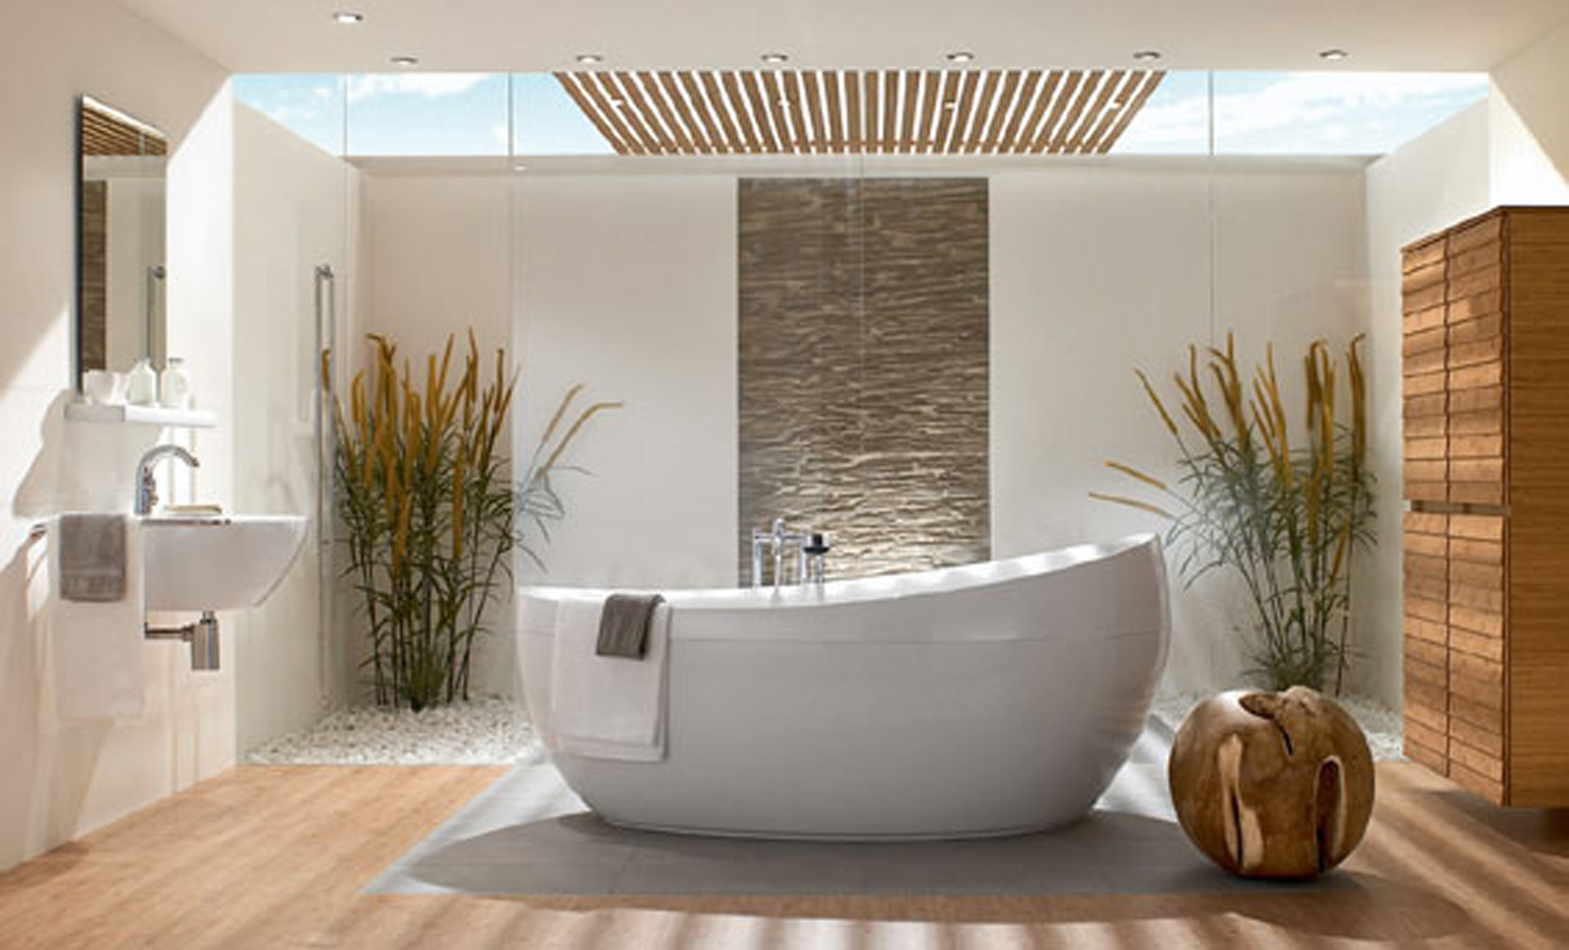 how ensure perfection with bathroom inspiration? SOHZWIL